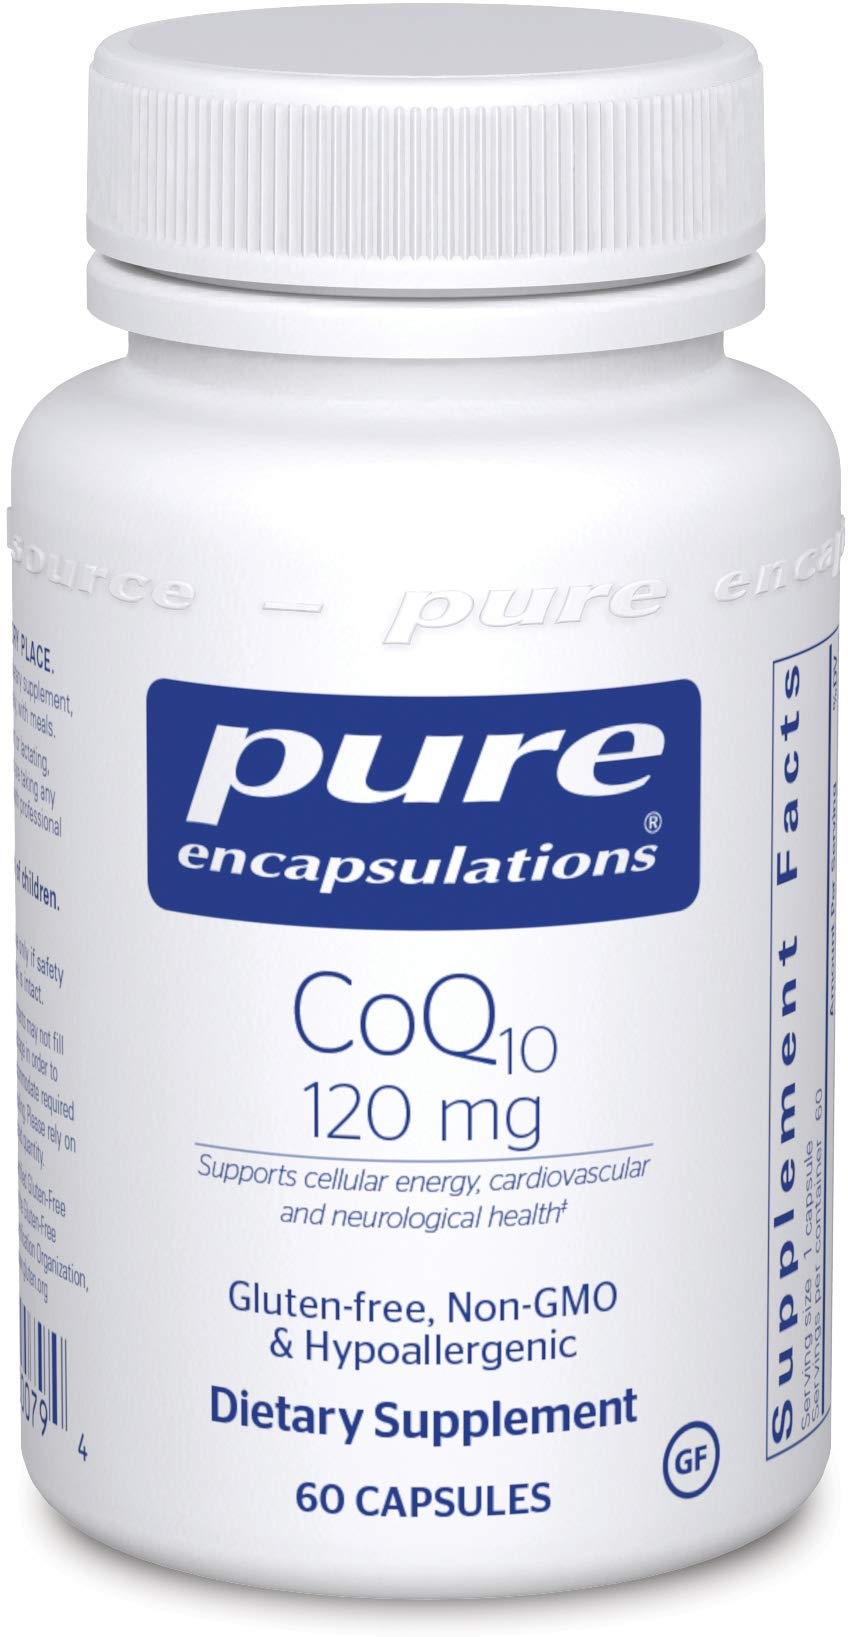 Pure Encapsulations CoQ10 120 mg   Coenzyme Q10 Supplement for Energy, Antioxidants, Brain and Cellular Health, Cognition, and Cardiovascular Support*   60 Capsules